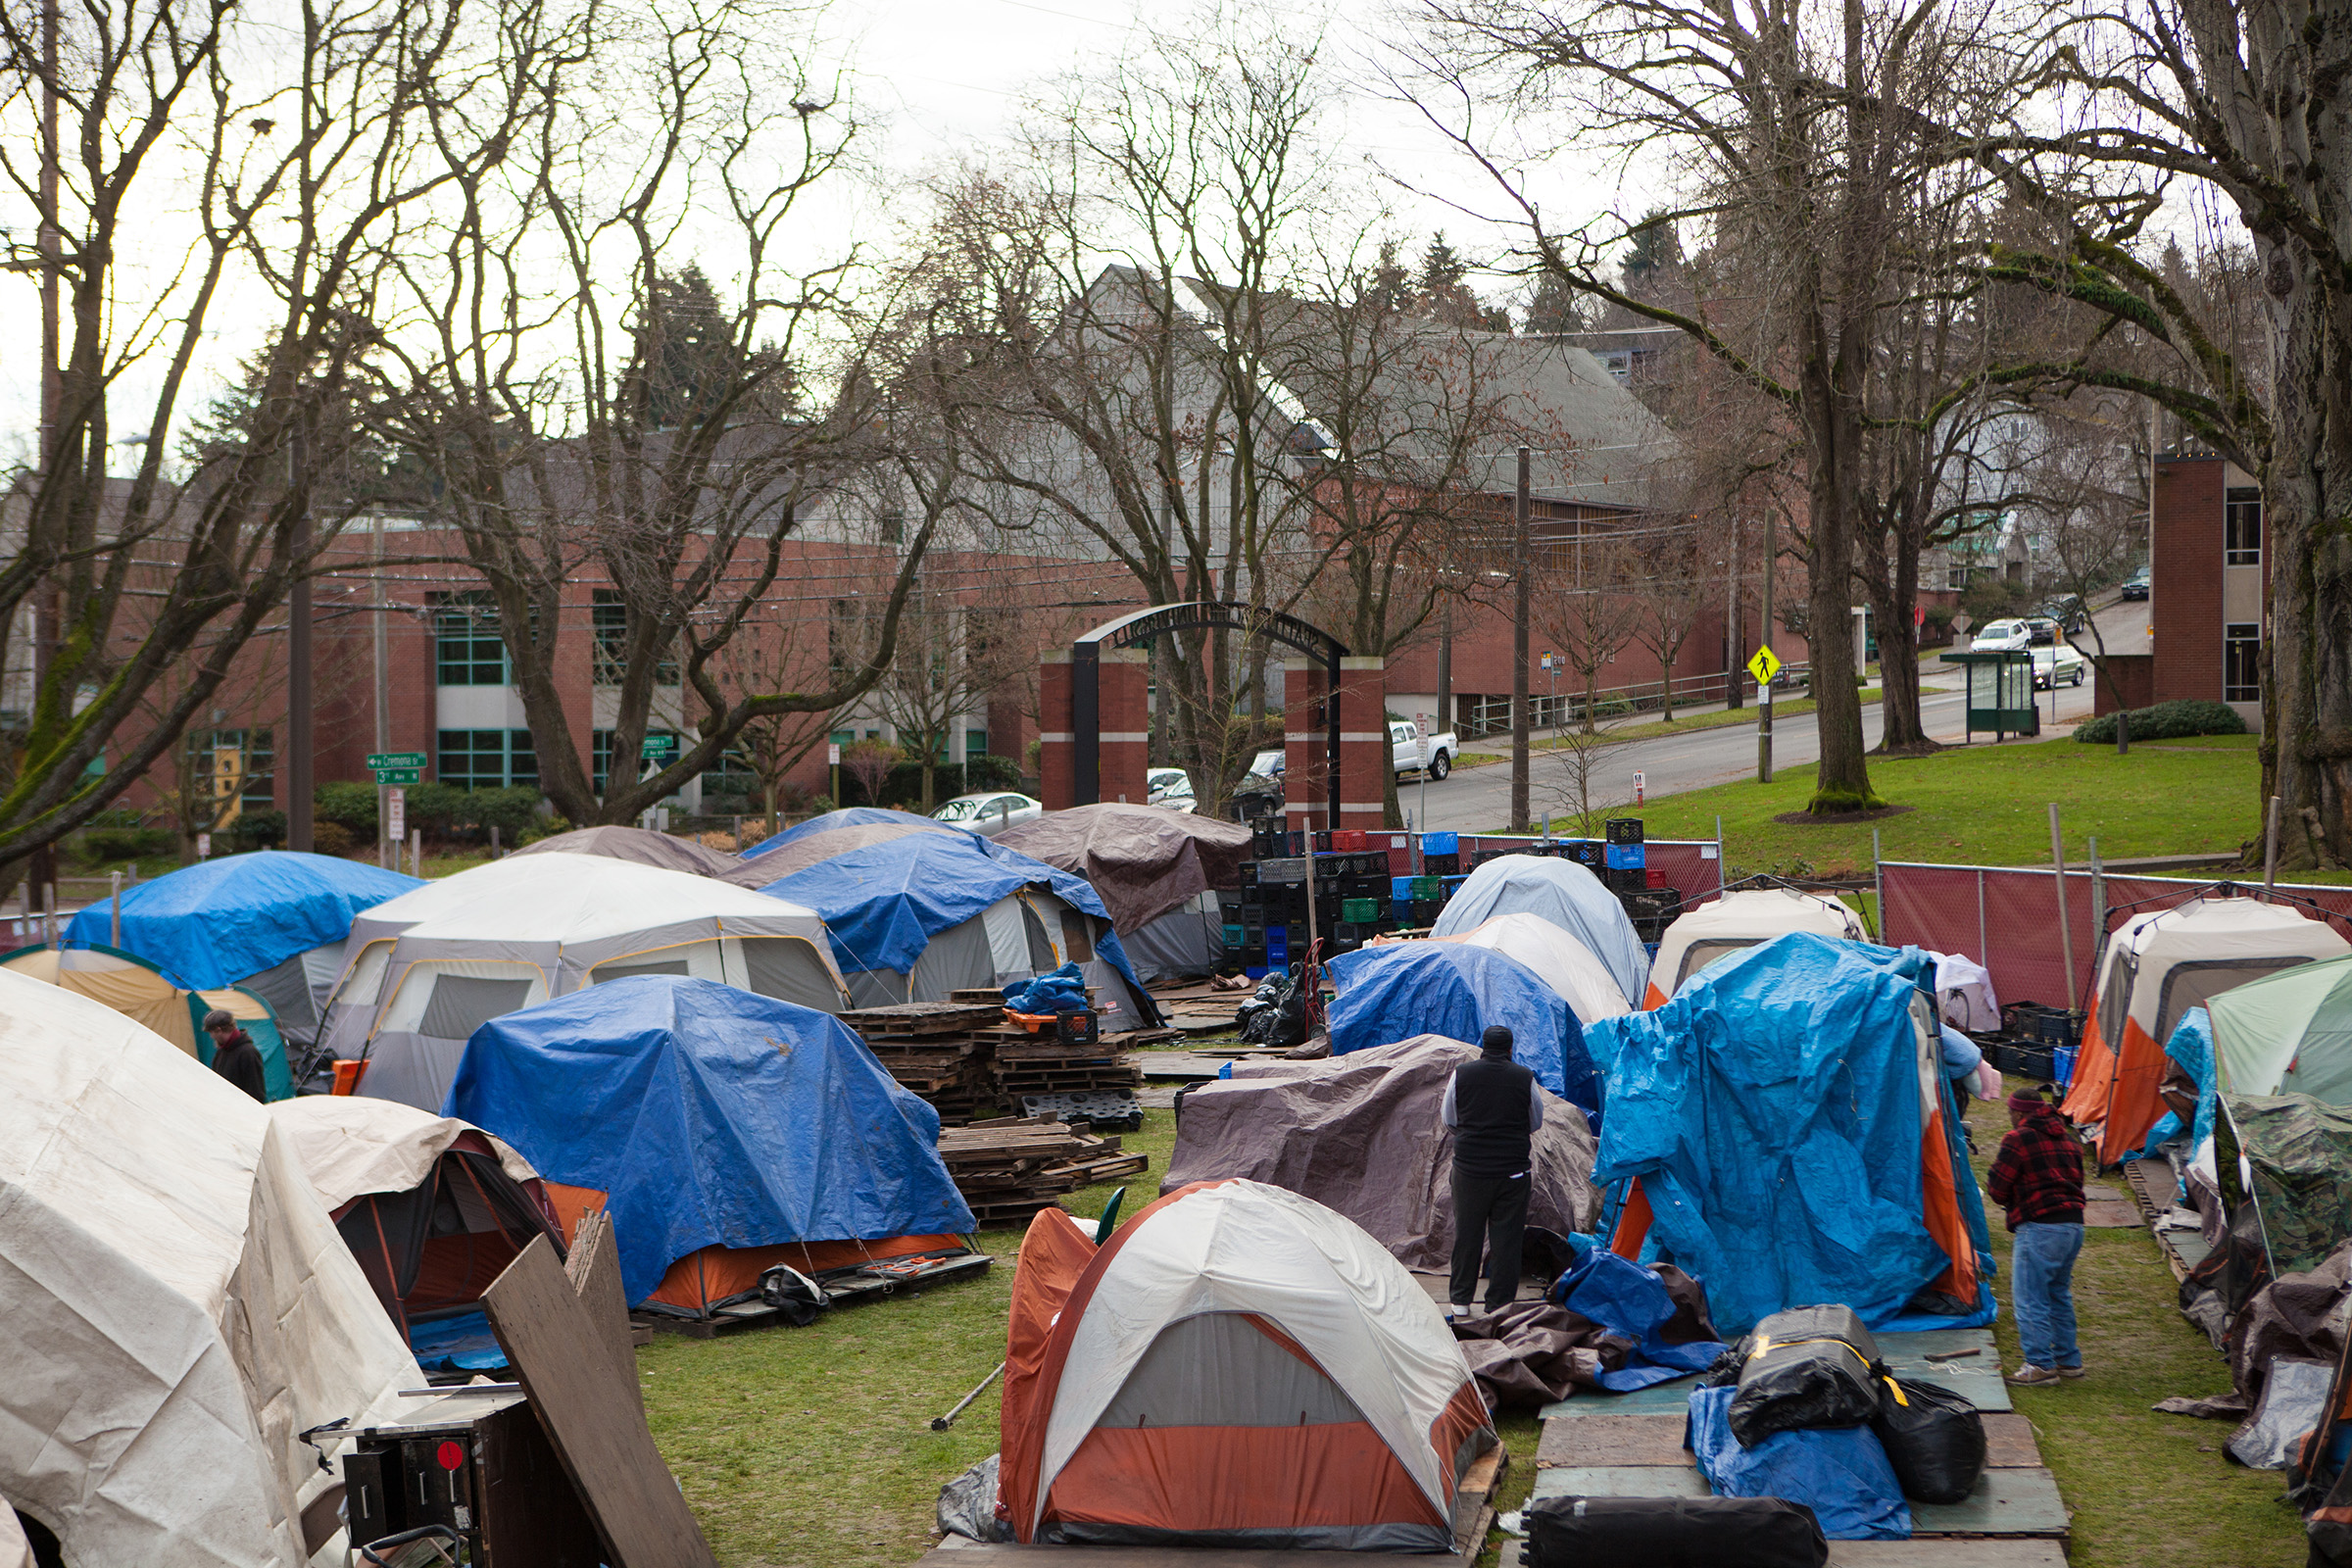 Homeless Tents & Image Tent City In Reno